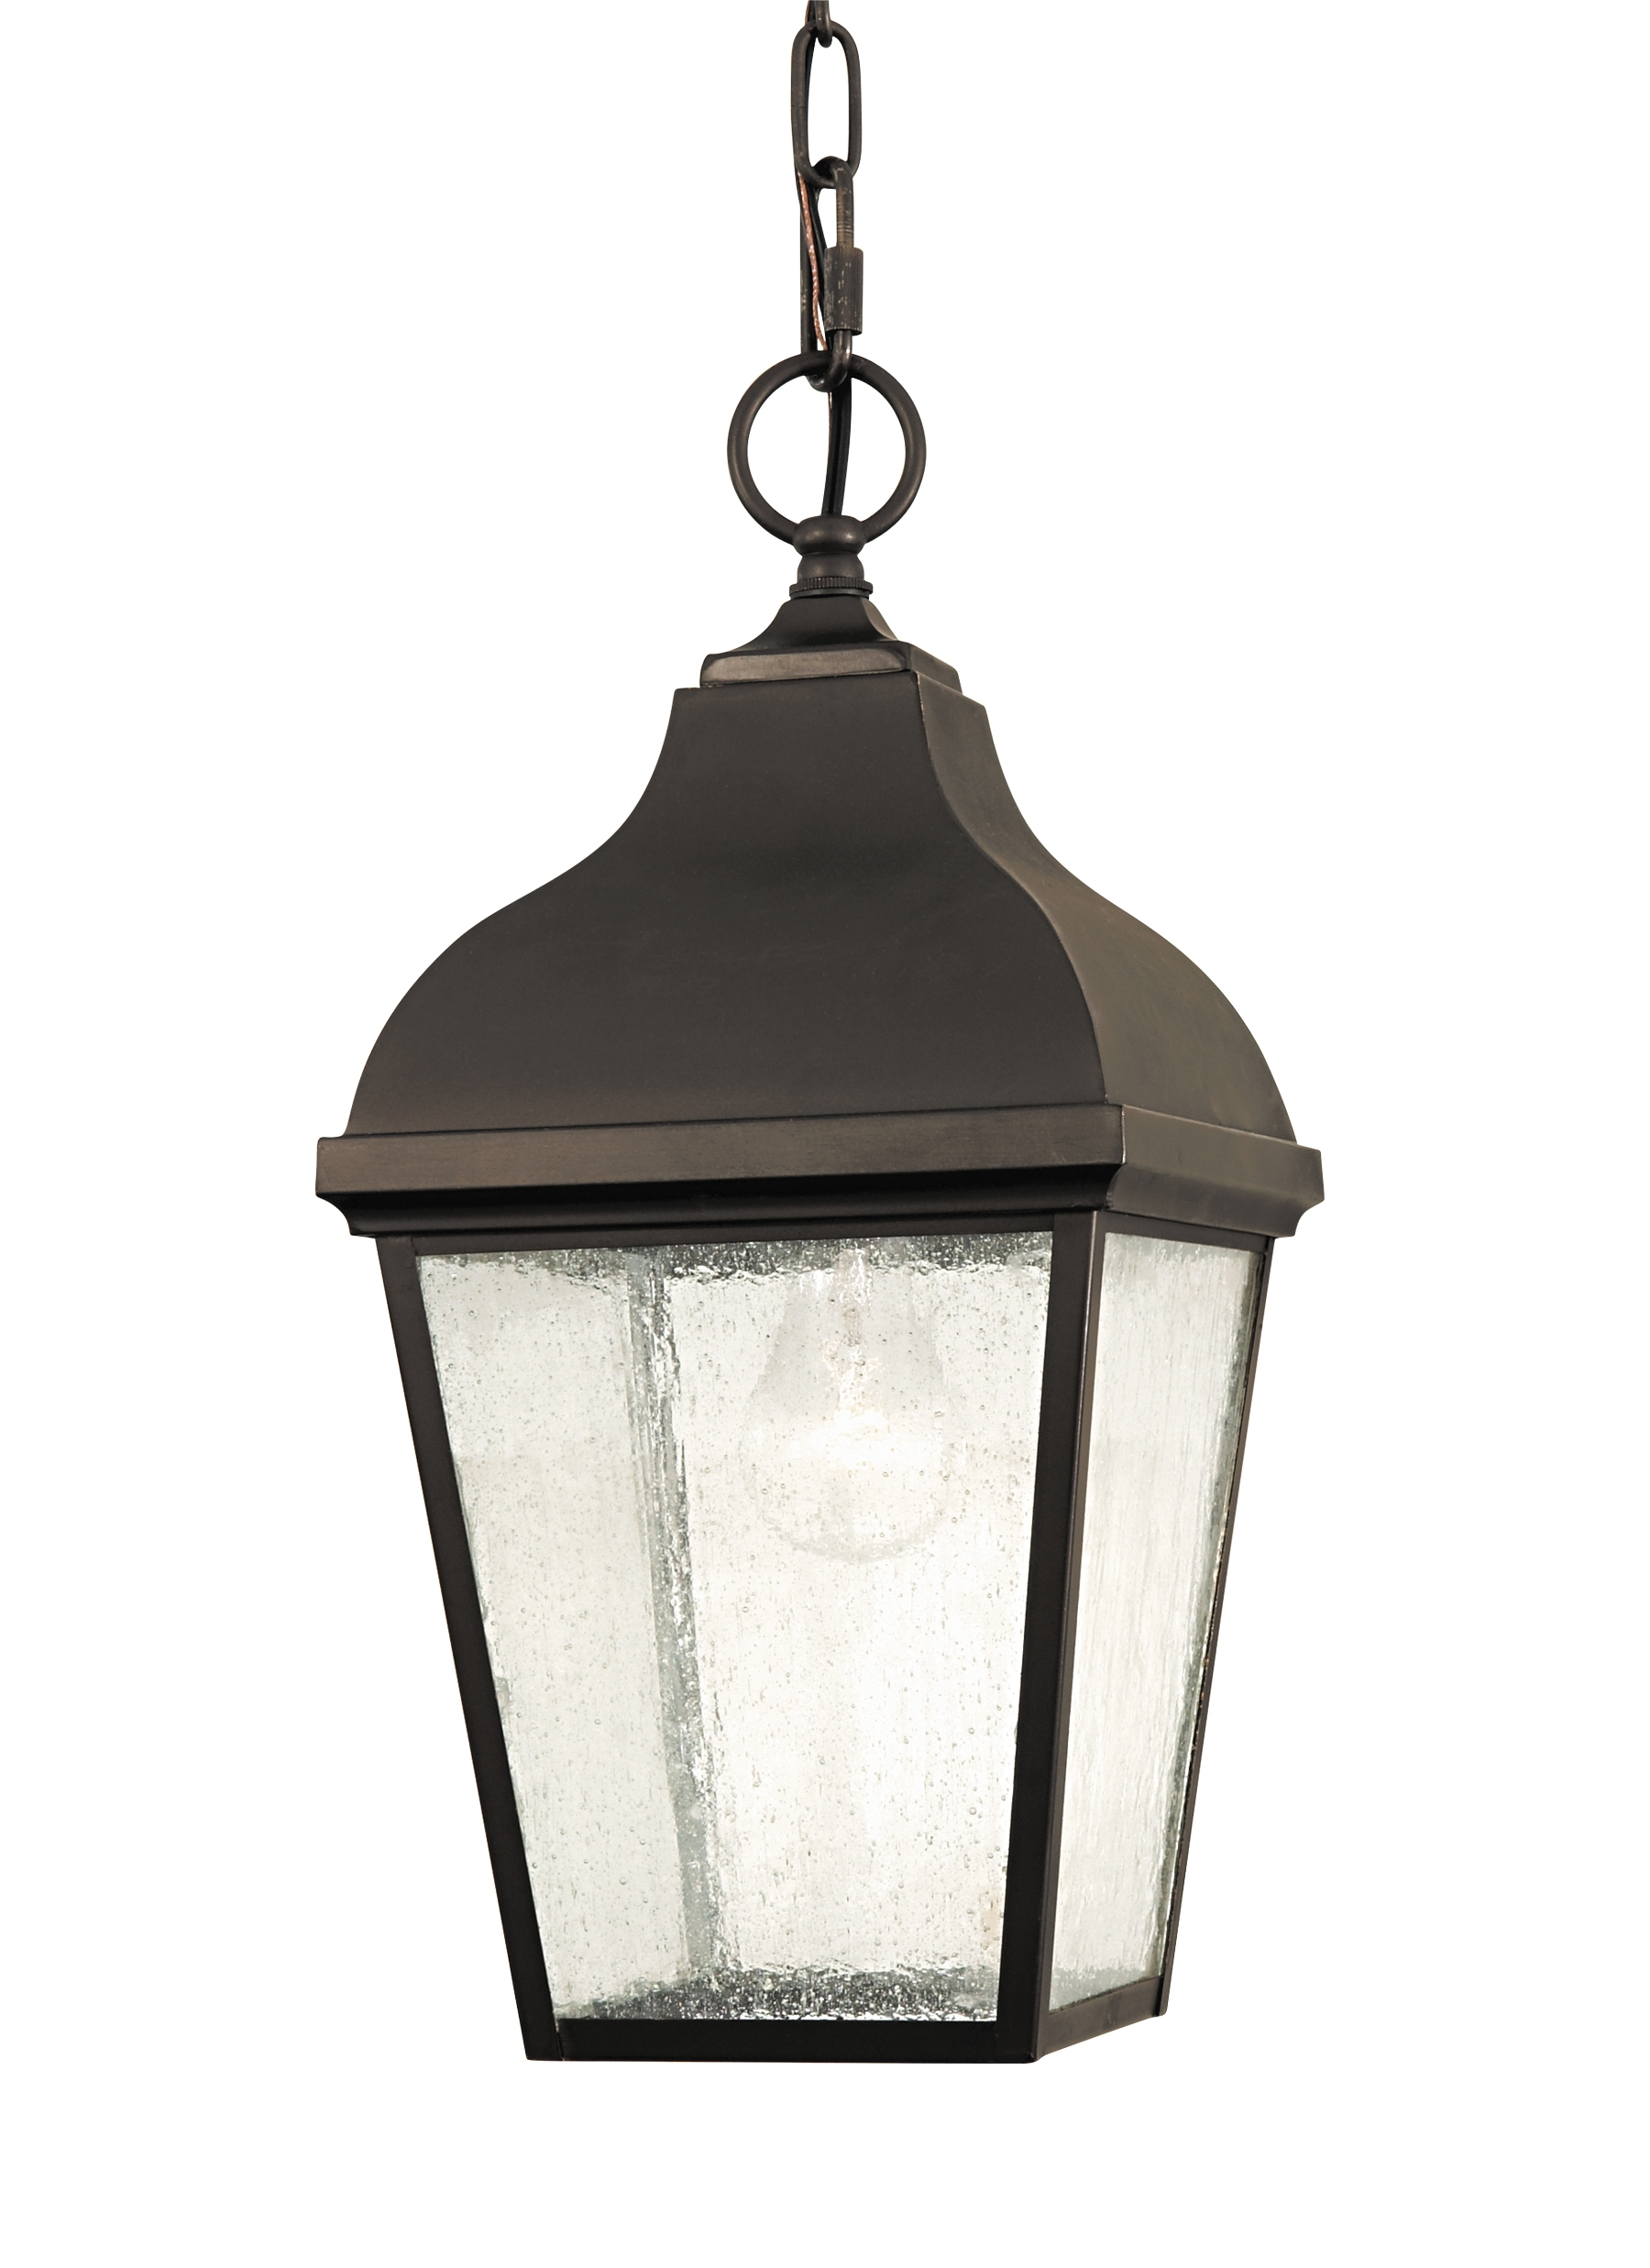 Ol4011Orb,1 – Light Pendant,oil Rubbed Bronze Within Well Known Outdoor Hanging Light Pendants (View 10 of 20)